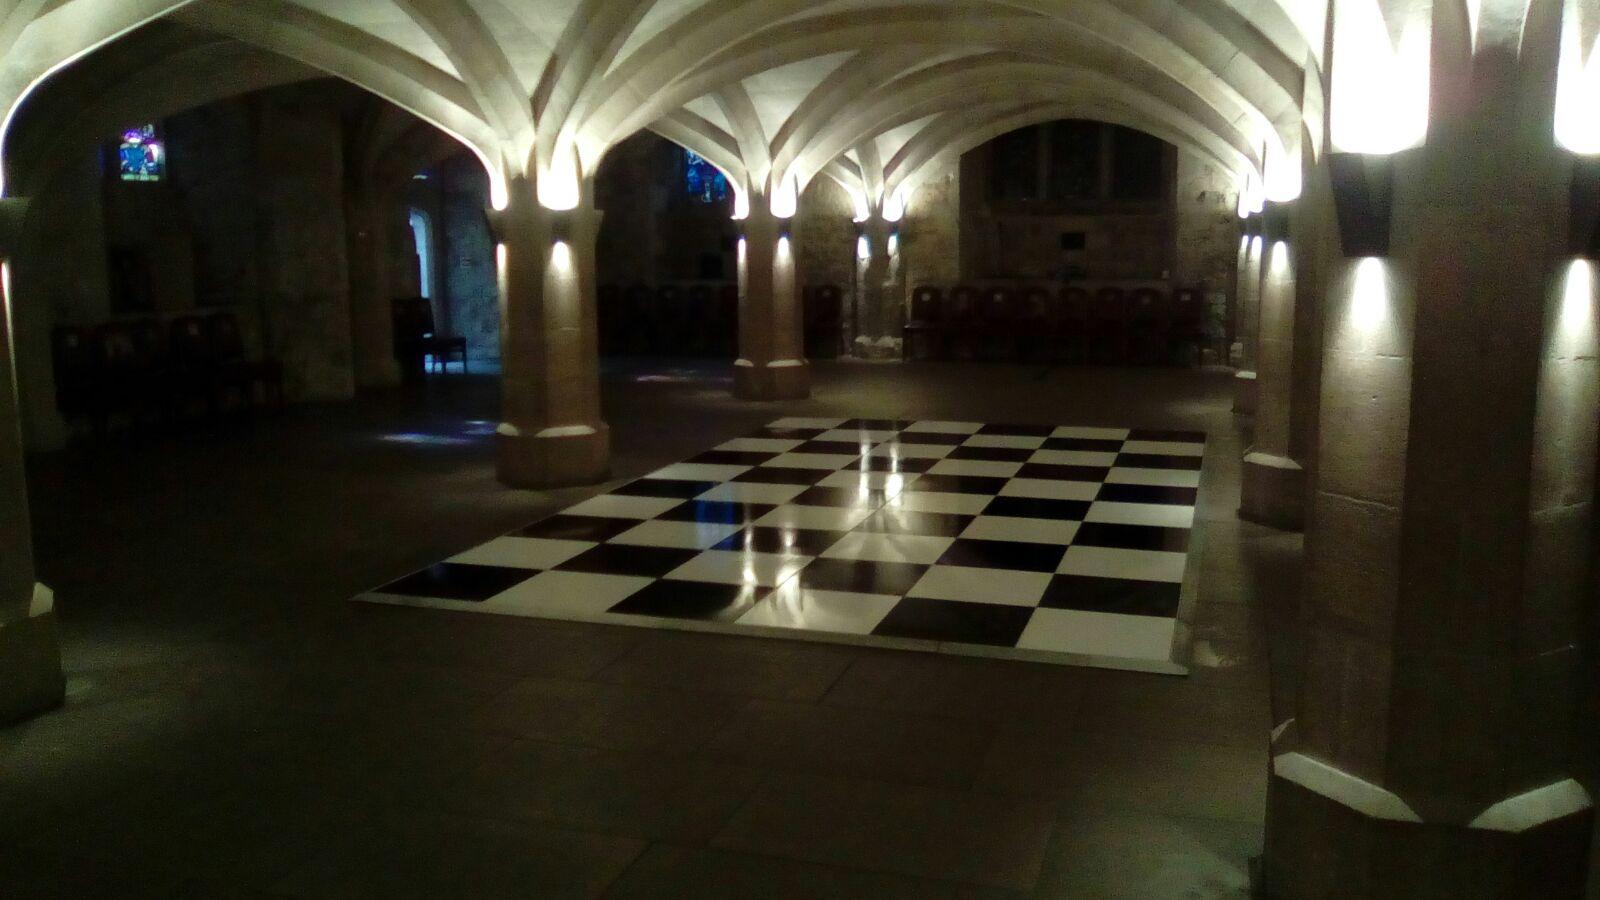 BW32 - Black and White Chequered - Guildhall Crypt